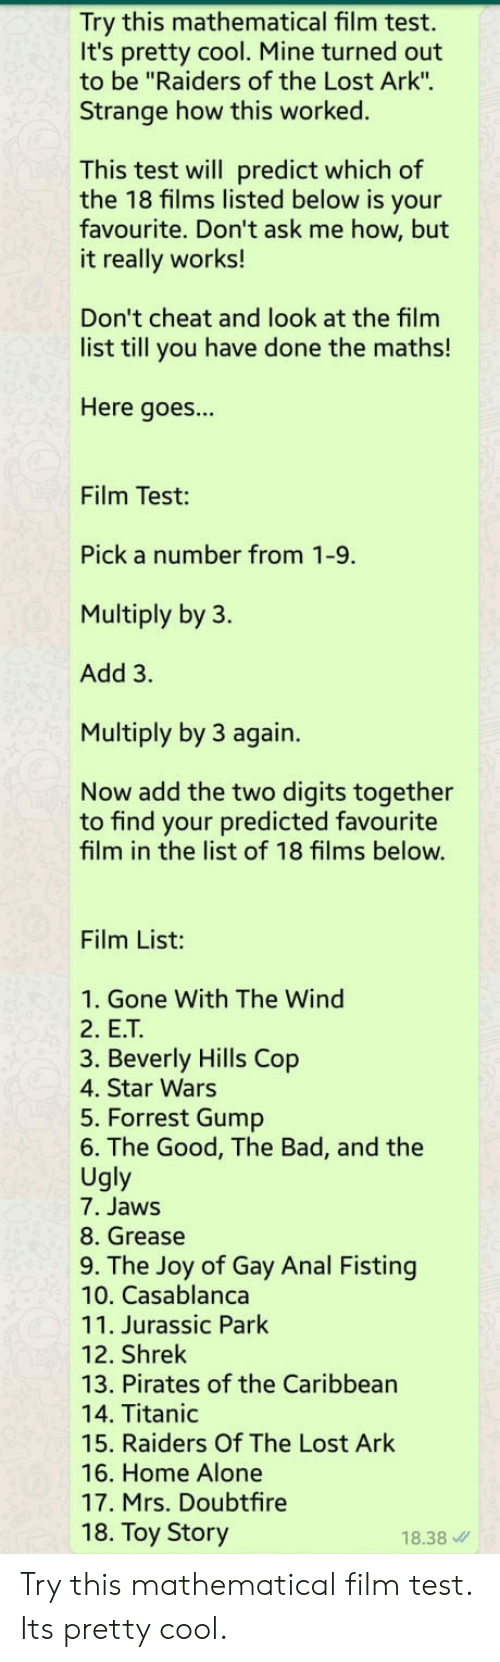 "Being Alone, Bad, and Forrest Gump: Try this mathematical film test.  It's pretty cool. Mine turned out  to be ""Raiders of the Lost Ark"".  Strange how this worked.  This test will predict which of  the 18 films listed below is your  favourite. Don't ask me how, but  it really works!  Don't cheat and look at the film  list till you have done the maths!  Here goes...  Film Test:  Pick a number from 1-9.  Multiply by 3.  Add 3.  Multiply by 3 again.  Now add the two digits together  to find your predicted favourite  film in the list of 18 films below.  Film List:  1. Gone With The Wind  2. E.T  3. Beverly Hills Cop  4. Star Wars  5. Forrest Gump  6. The Good, The Bad, and the  Ugly  7. Jaws  8. Grease  9. The Joy of Gay Anal Fisting  10. Casablanca  11. Jurassic Park  12. Shrek  13. Pirates of the Caribbean  14. Titanic  15. Raiders Of The Lost Ark  16. Home Alone  17. Mrs. Doubtfire  18. Toy Story  18.38 Try this mathematical film test. Its pretty cool."